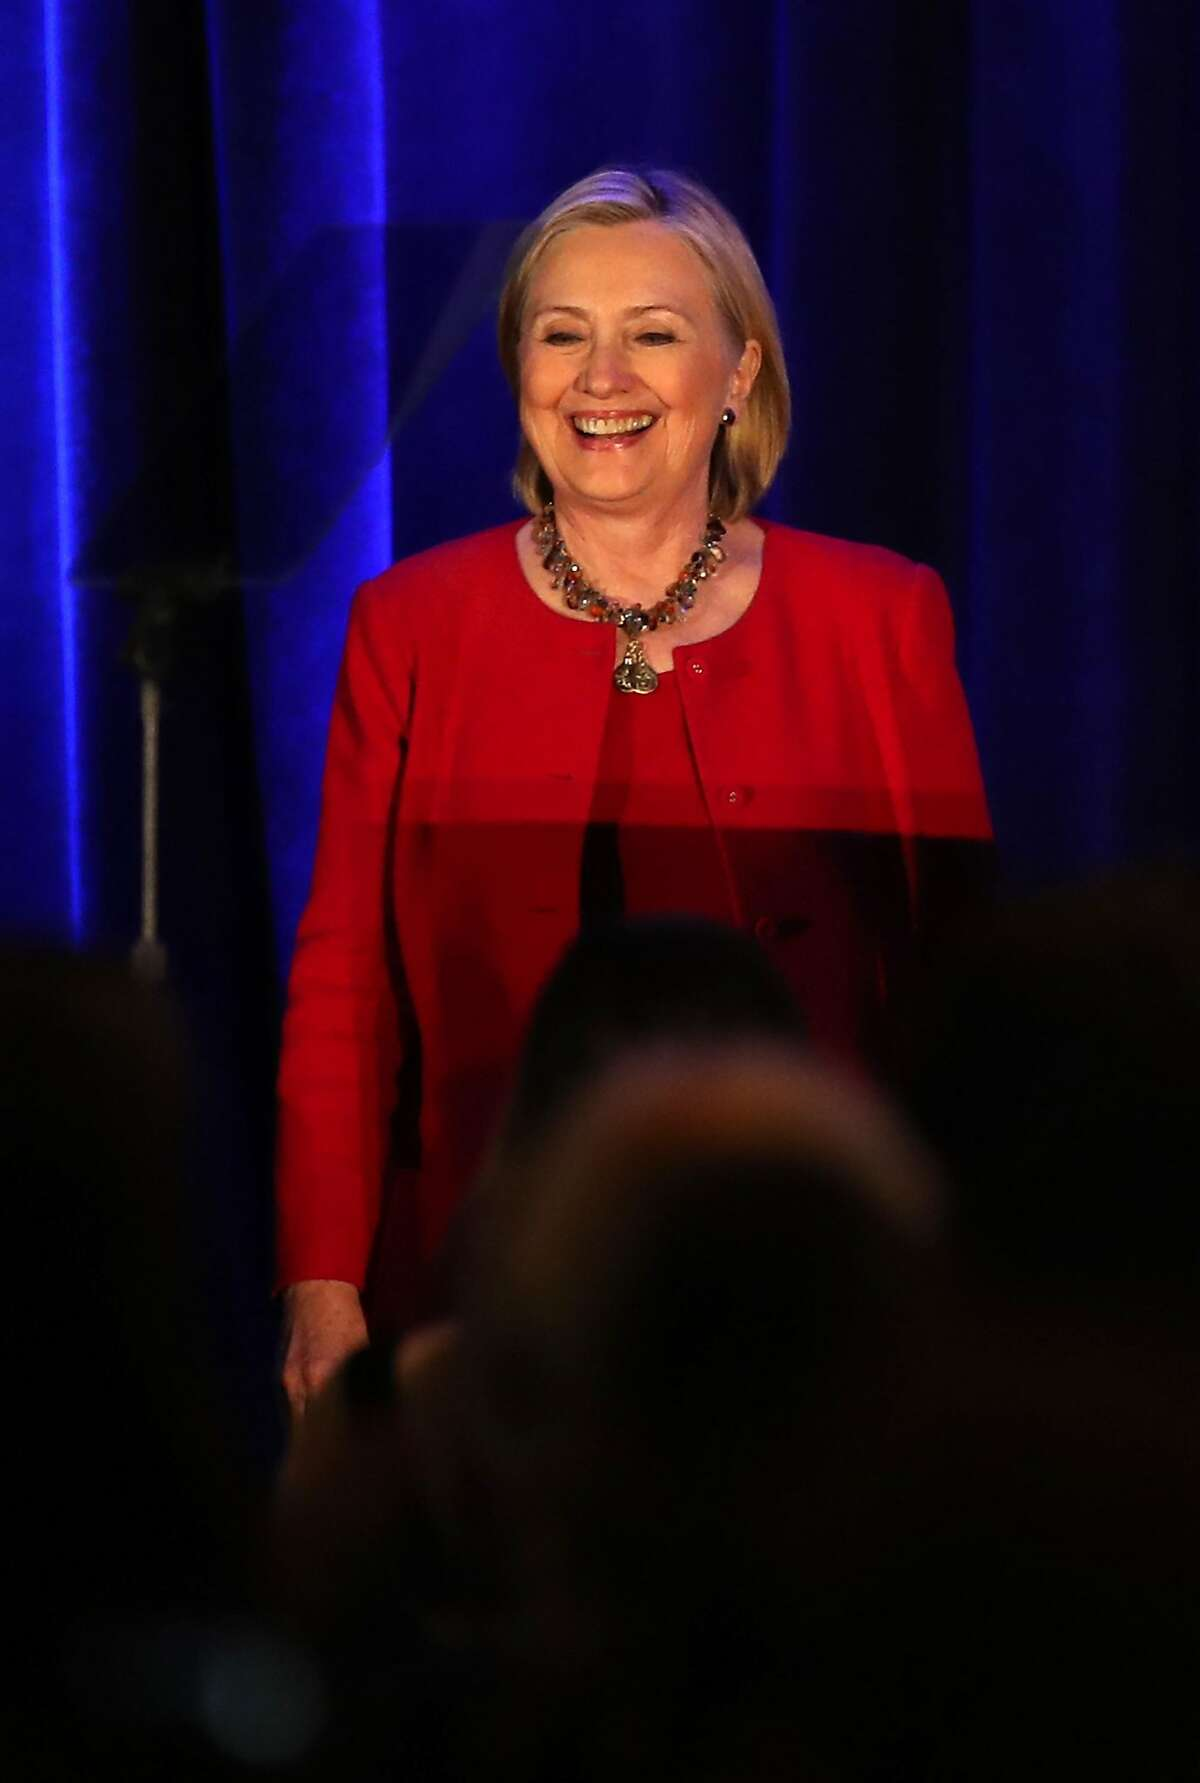 After receiving 2018 Courageous Leadership Award, Hillary Clinton speaks at Giffords Law Center's 25th Anniversary Dinner at Hyatt Regency in San Francisco, Calif., on Thursday, June 14, 2018.